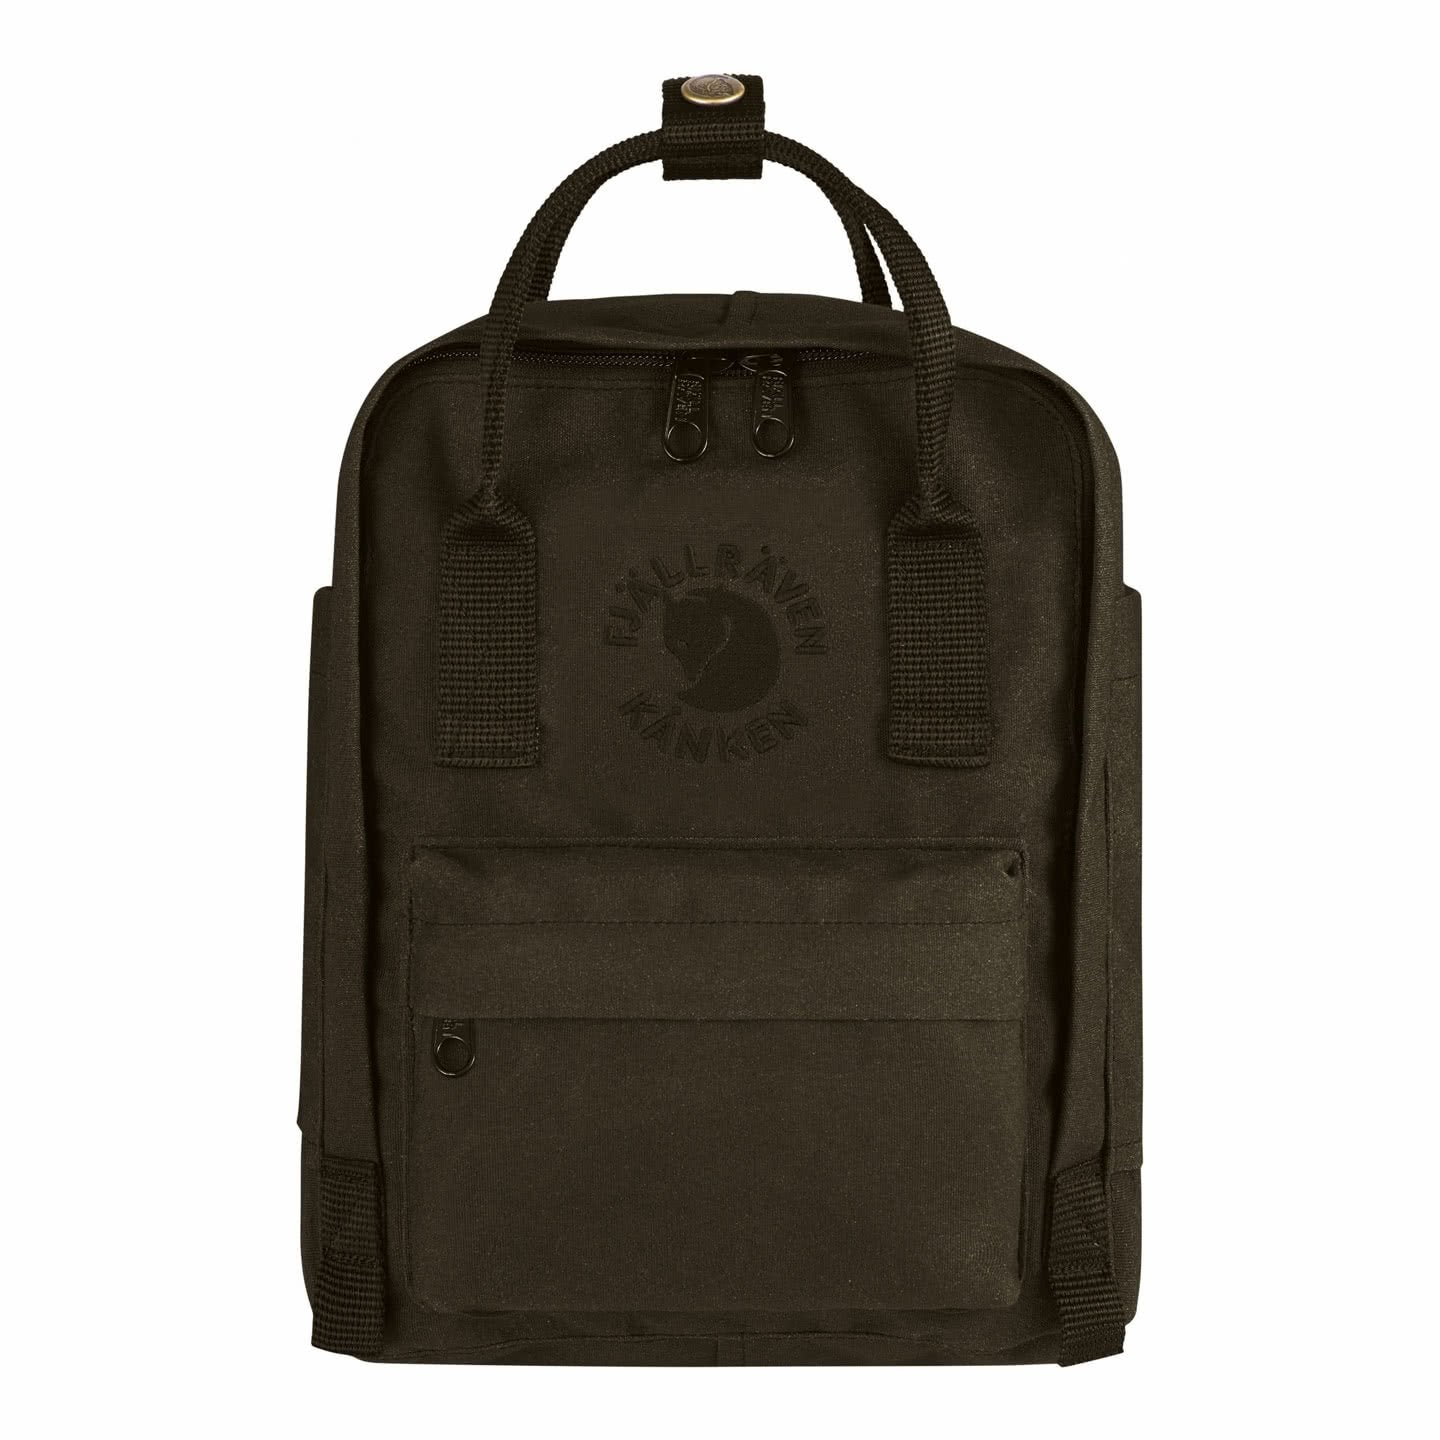 Fjallraven Re-Kanken Mini Backpack - Dark Olive - Find Your Feet Australia Hobart Launceston Tasmania